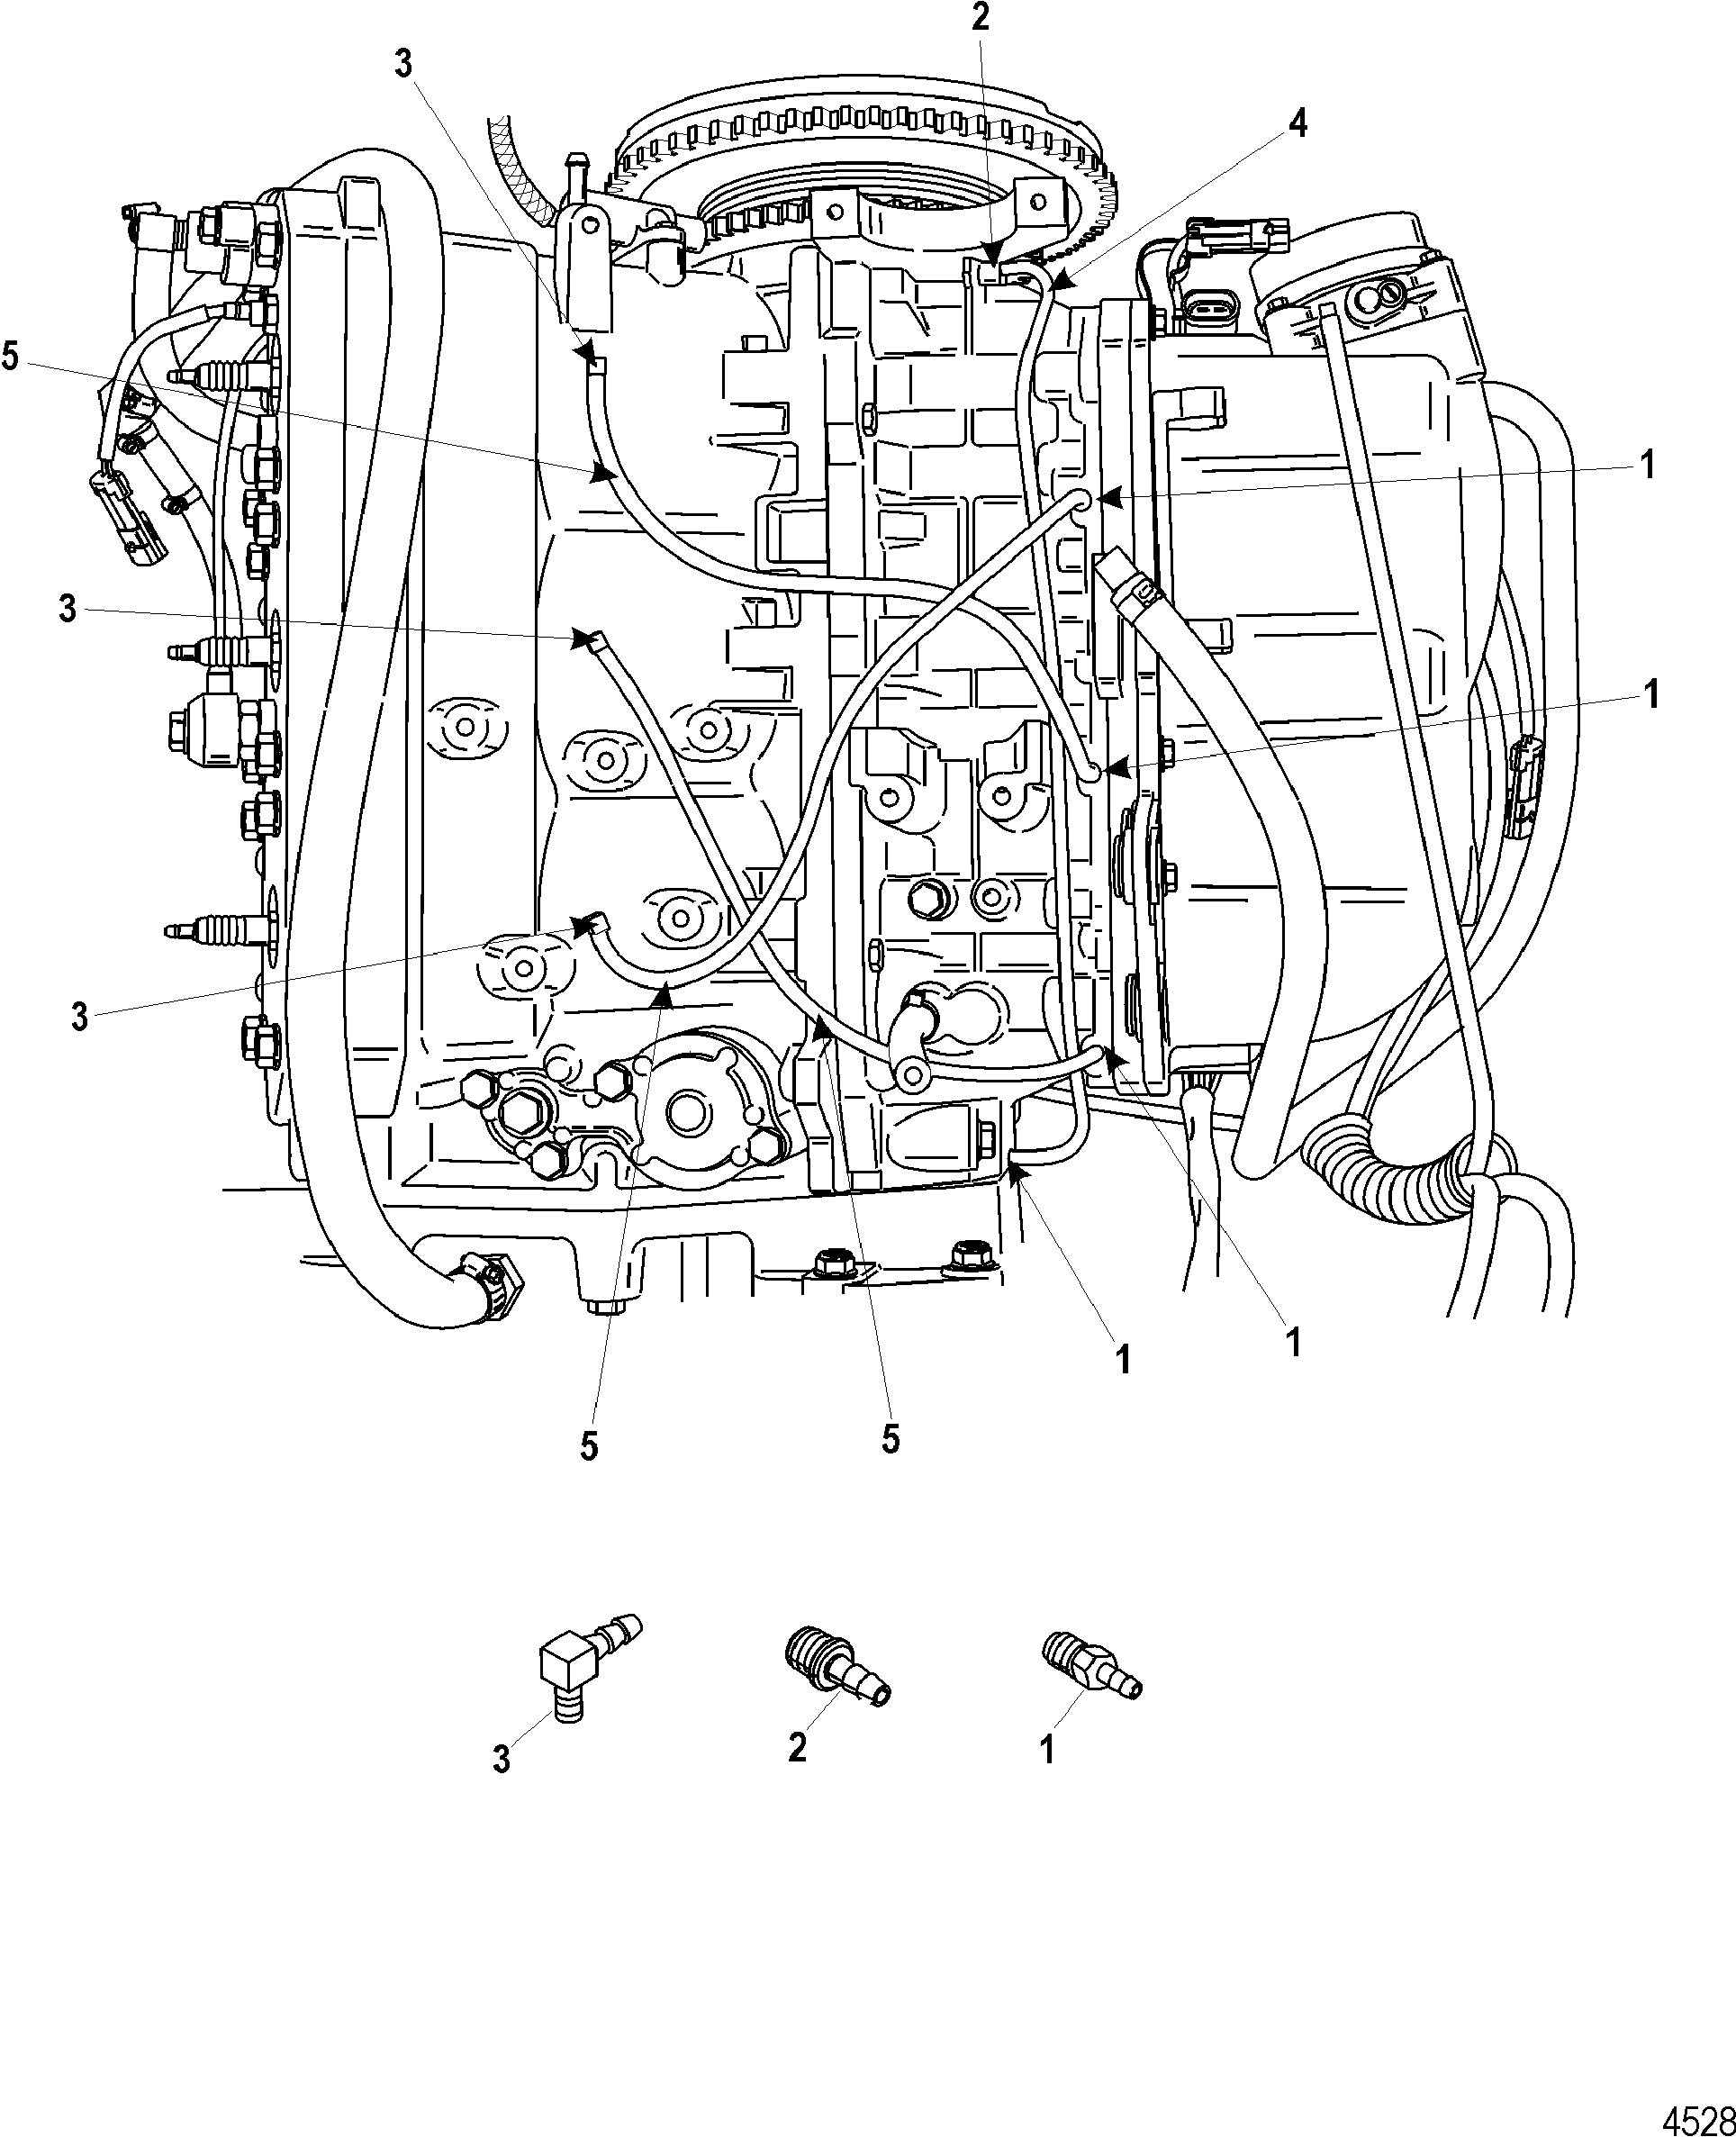 60 Hp Mercury Outboard Schematic